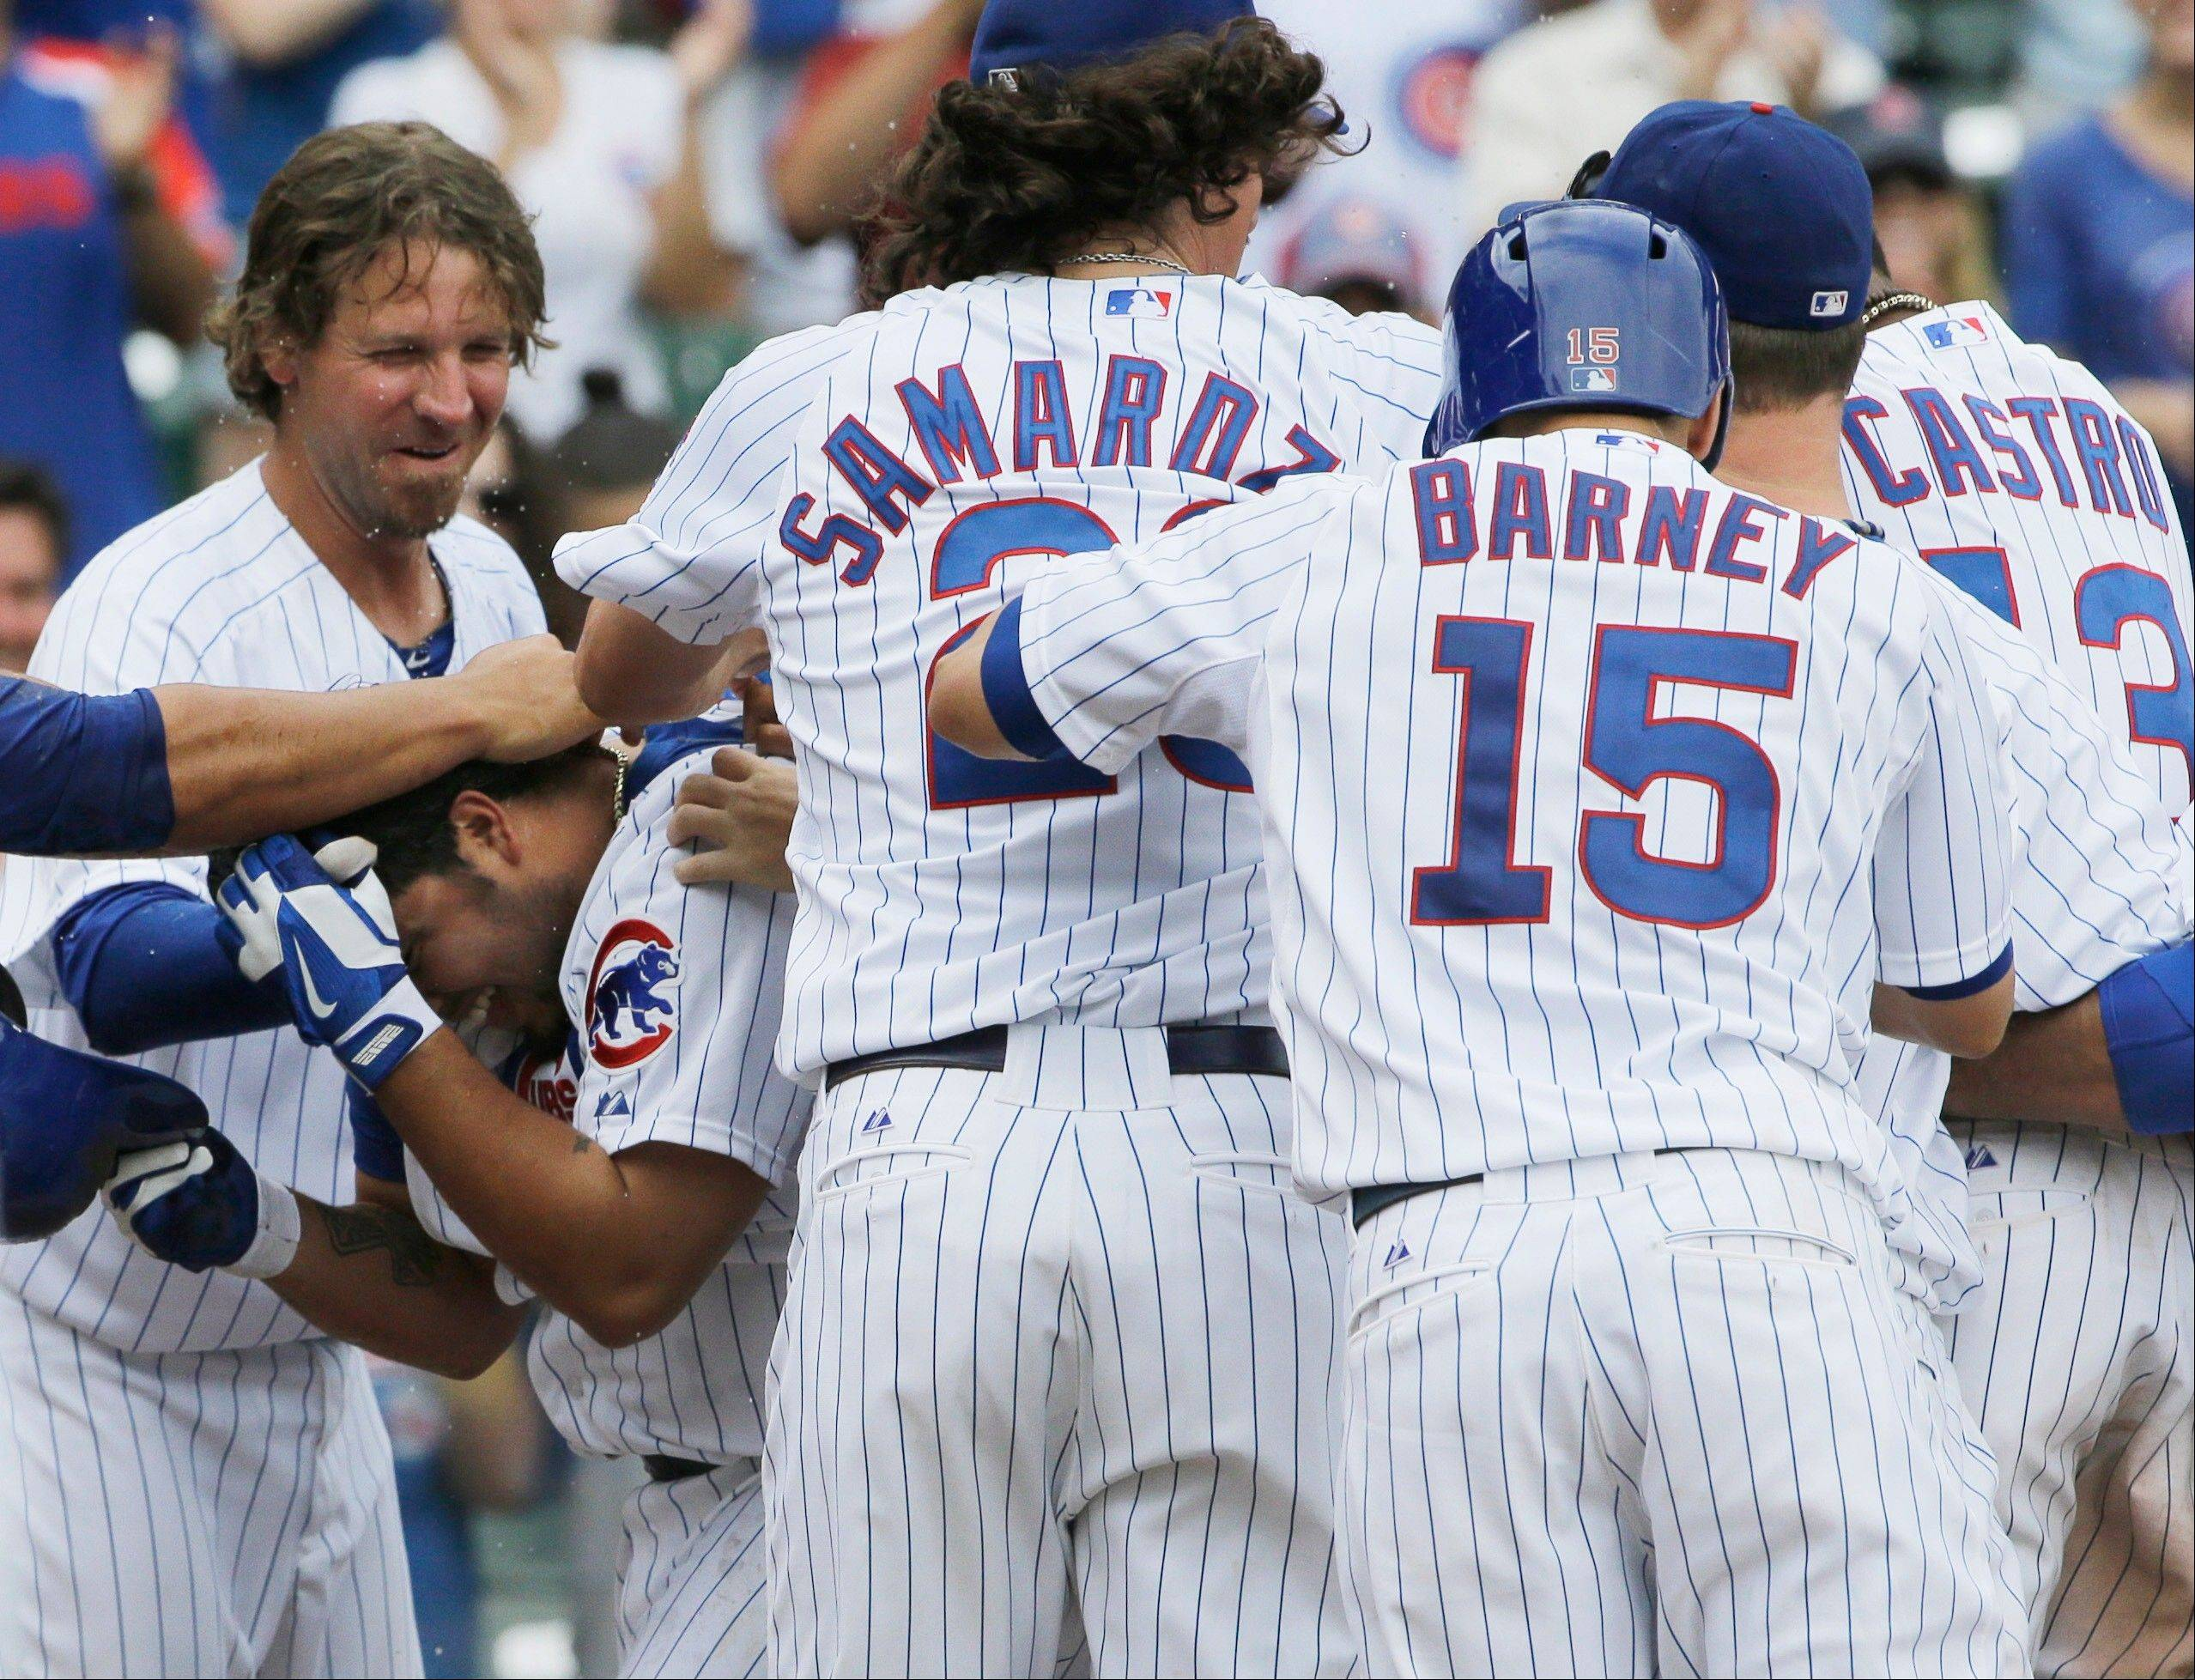 The Cubs' Dioner Navarro, lower left, celebrates with teammates after his game-ending sacrifice fly in the 11th inning Sunday at Wrigley Field.